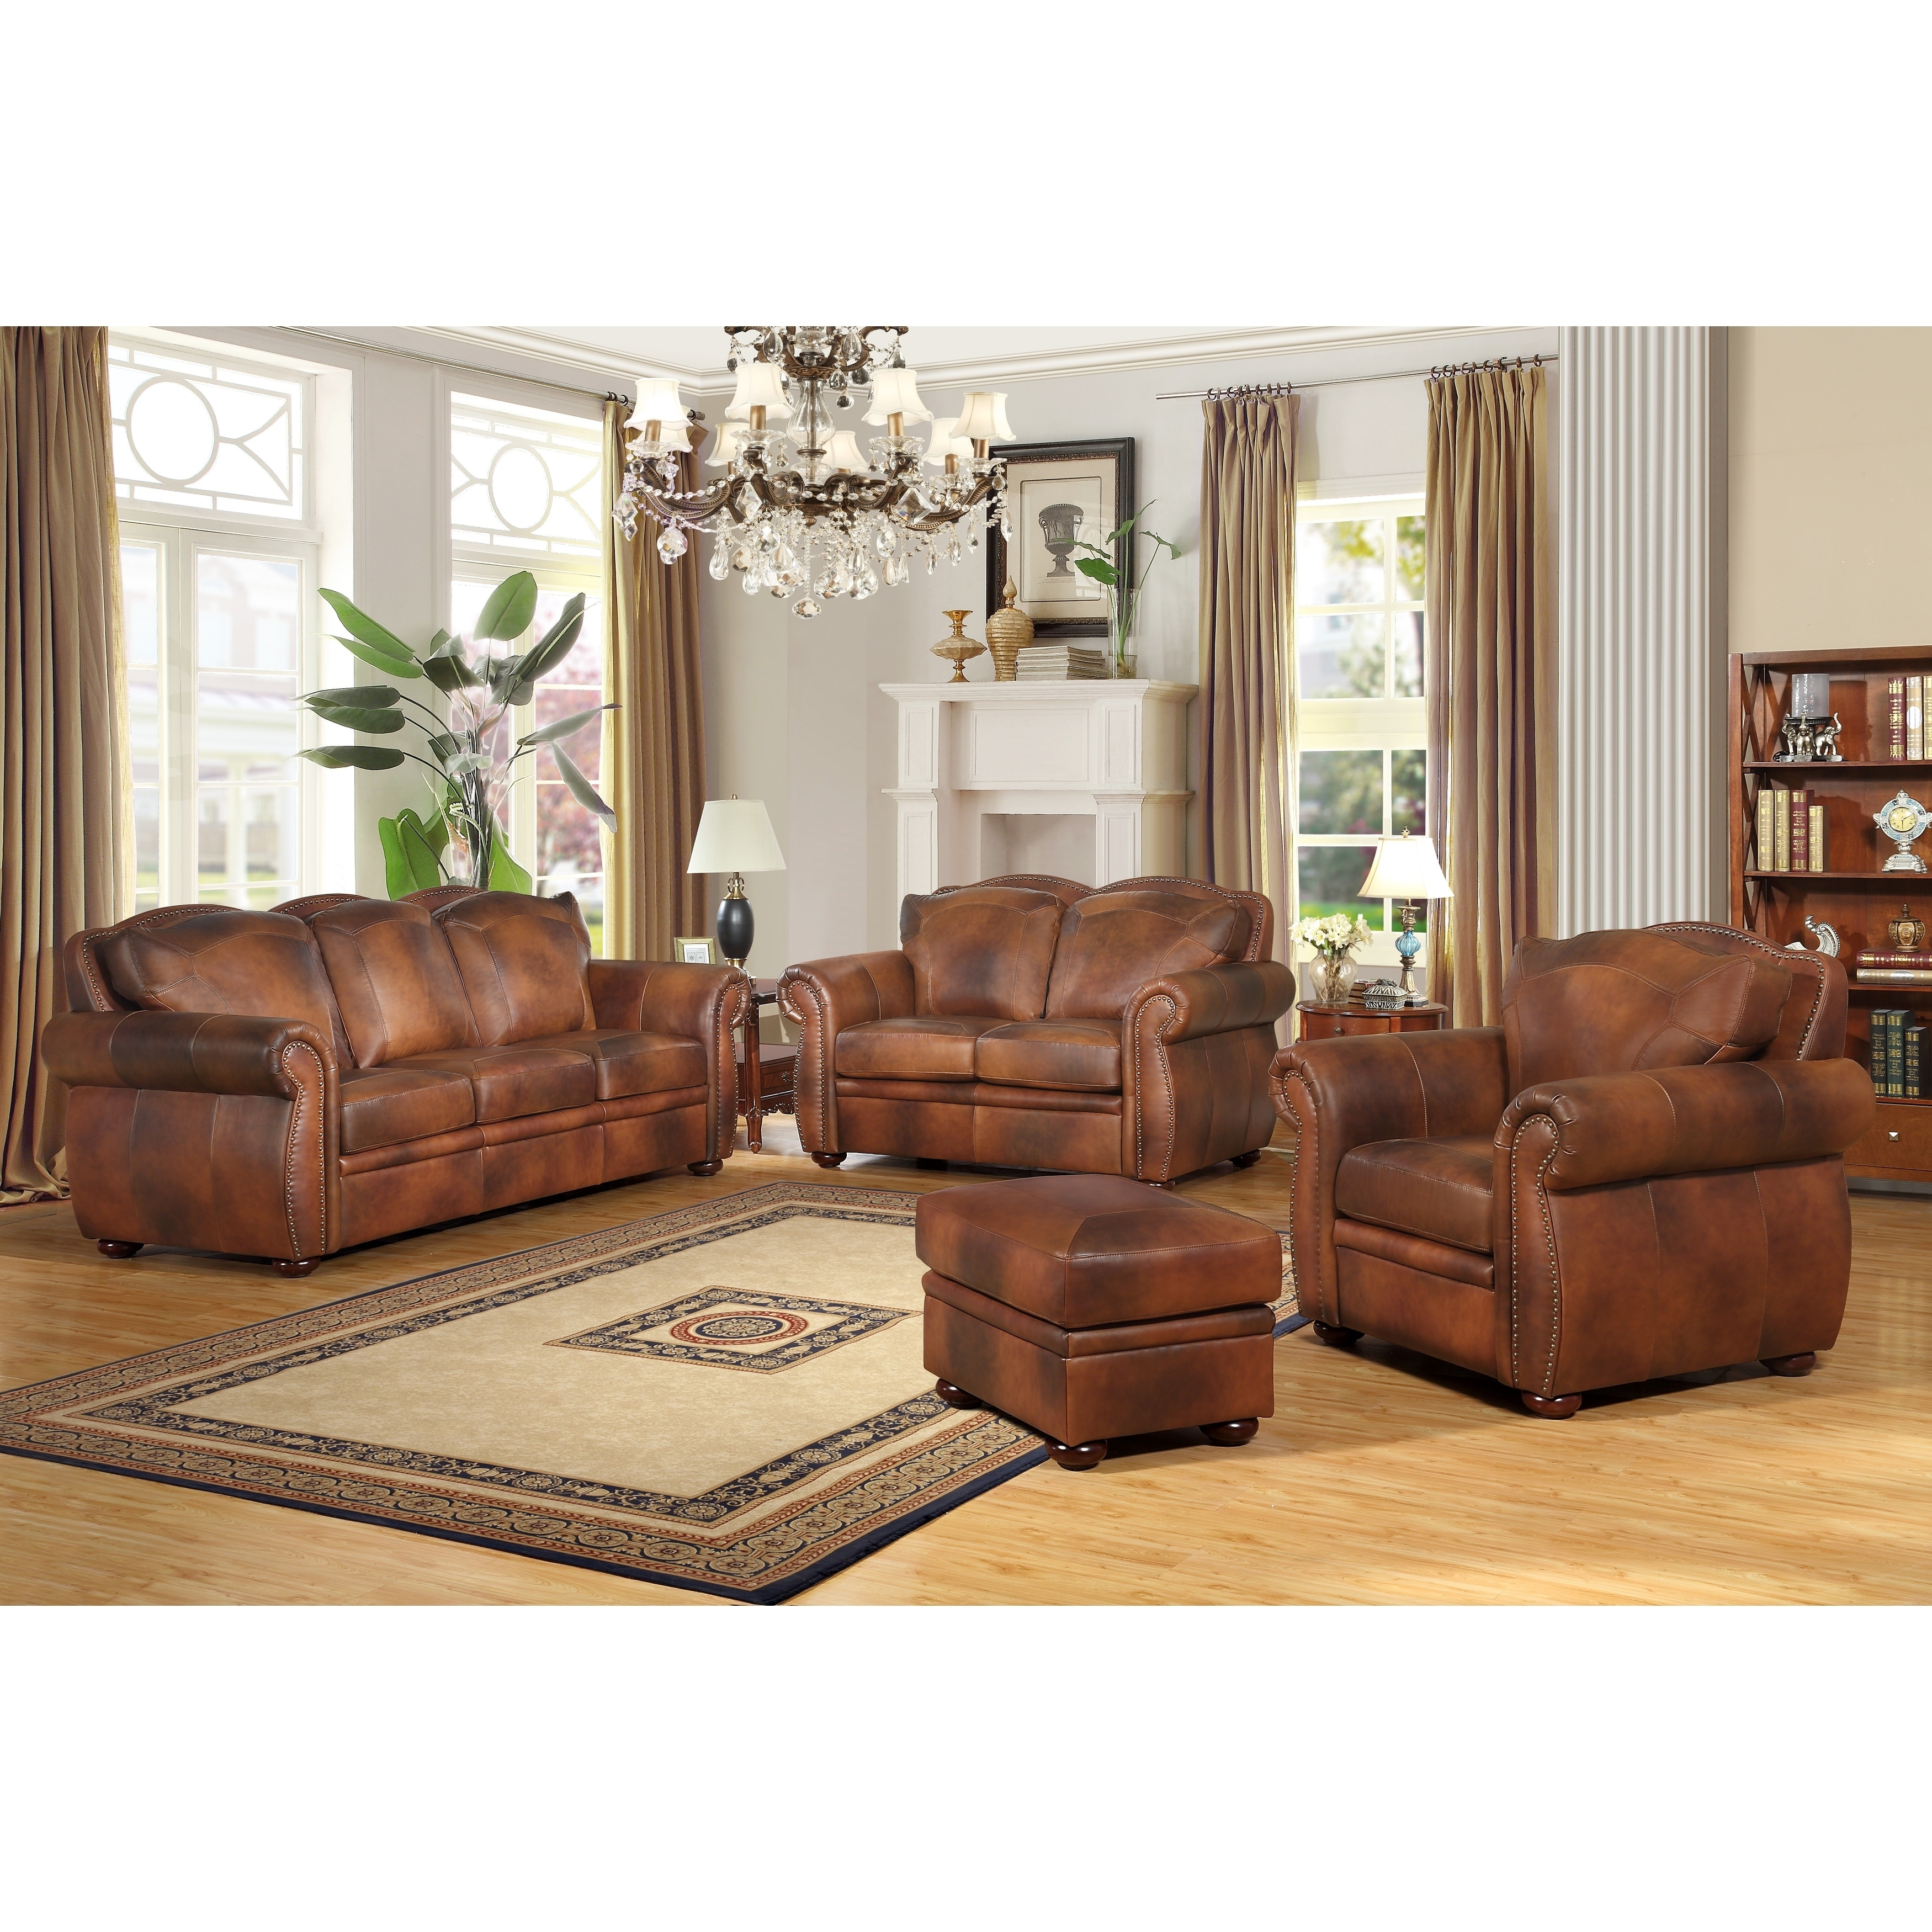 couches covers sofas of next full bed hancock black size leather couch italian and moore sofa dealers brown